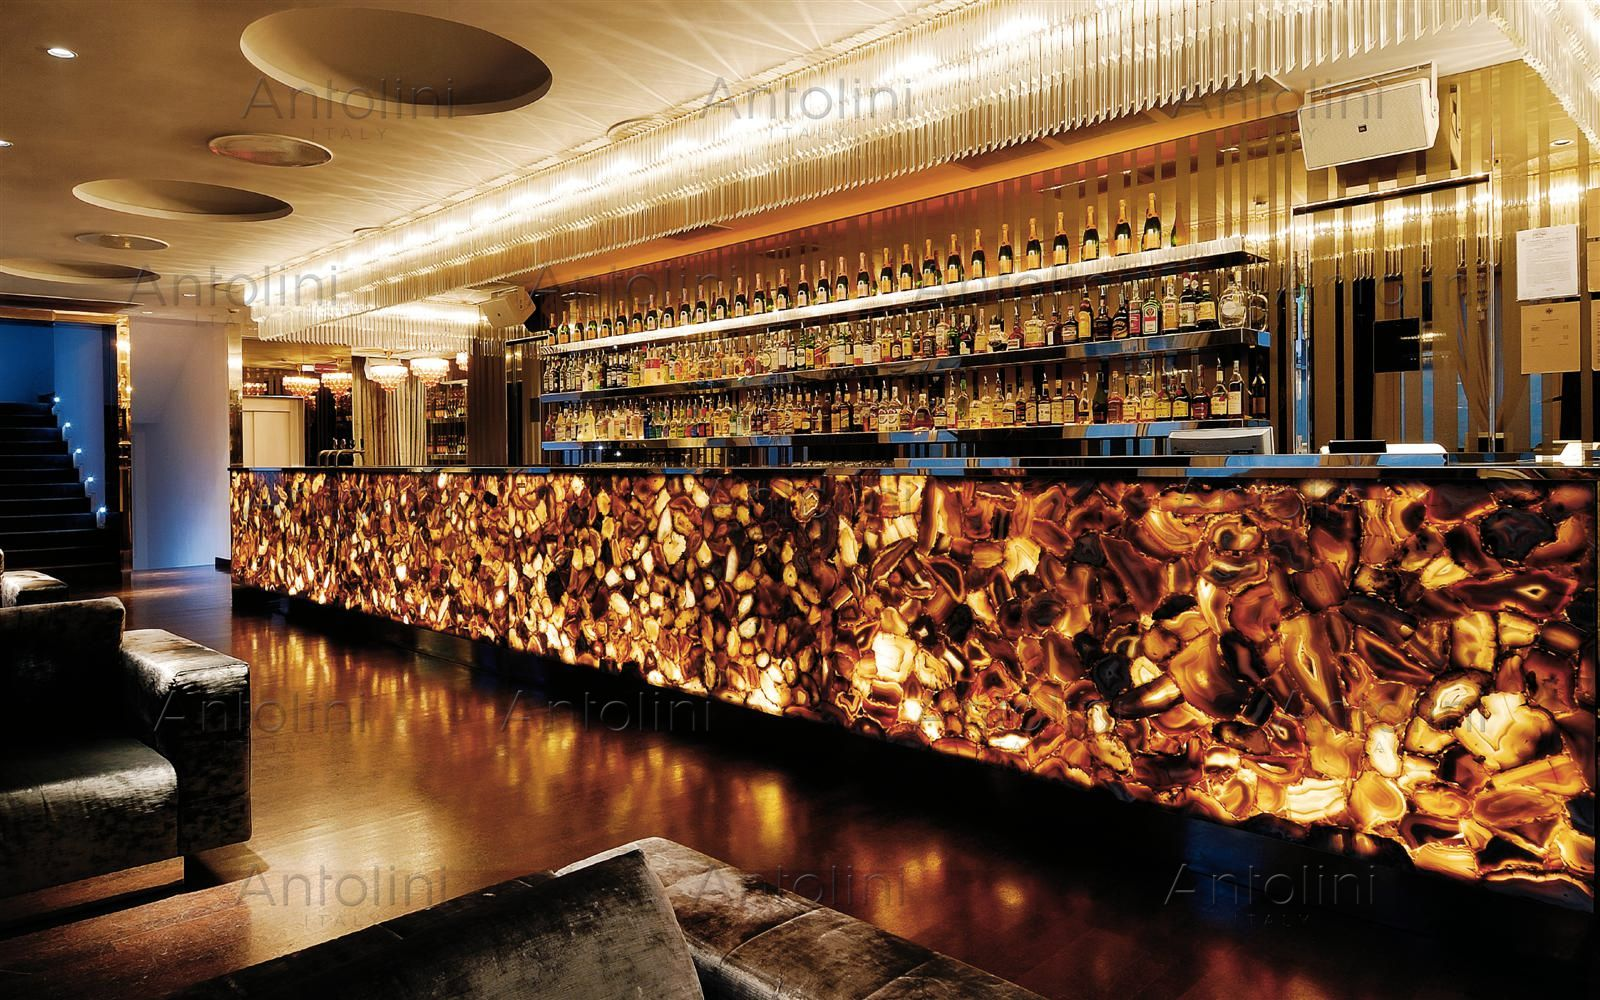 lotvs lounge in milan - antolini backlit semiprecious stone slabs